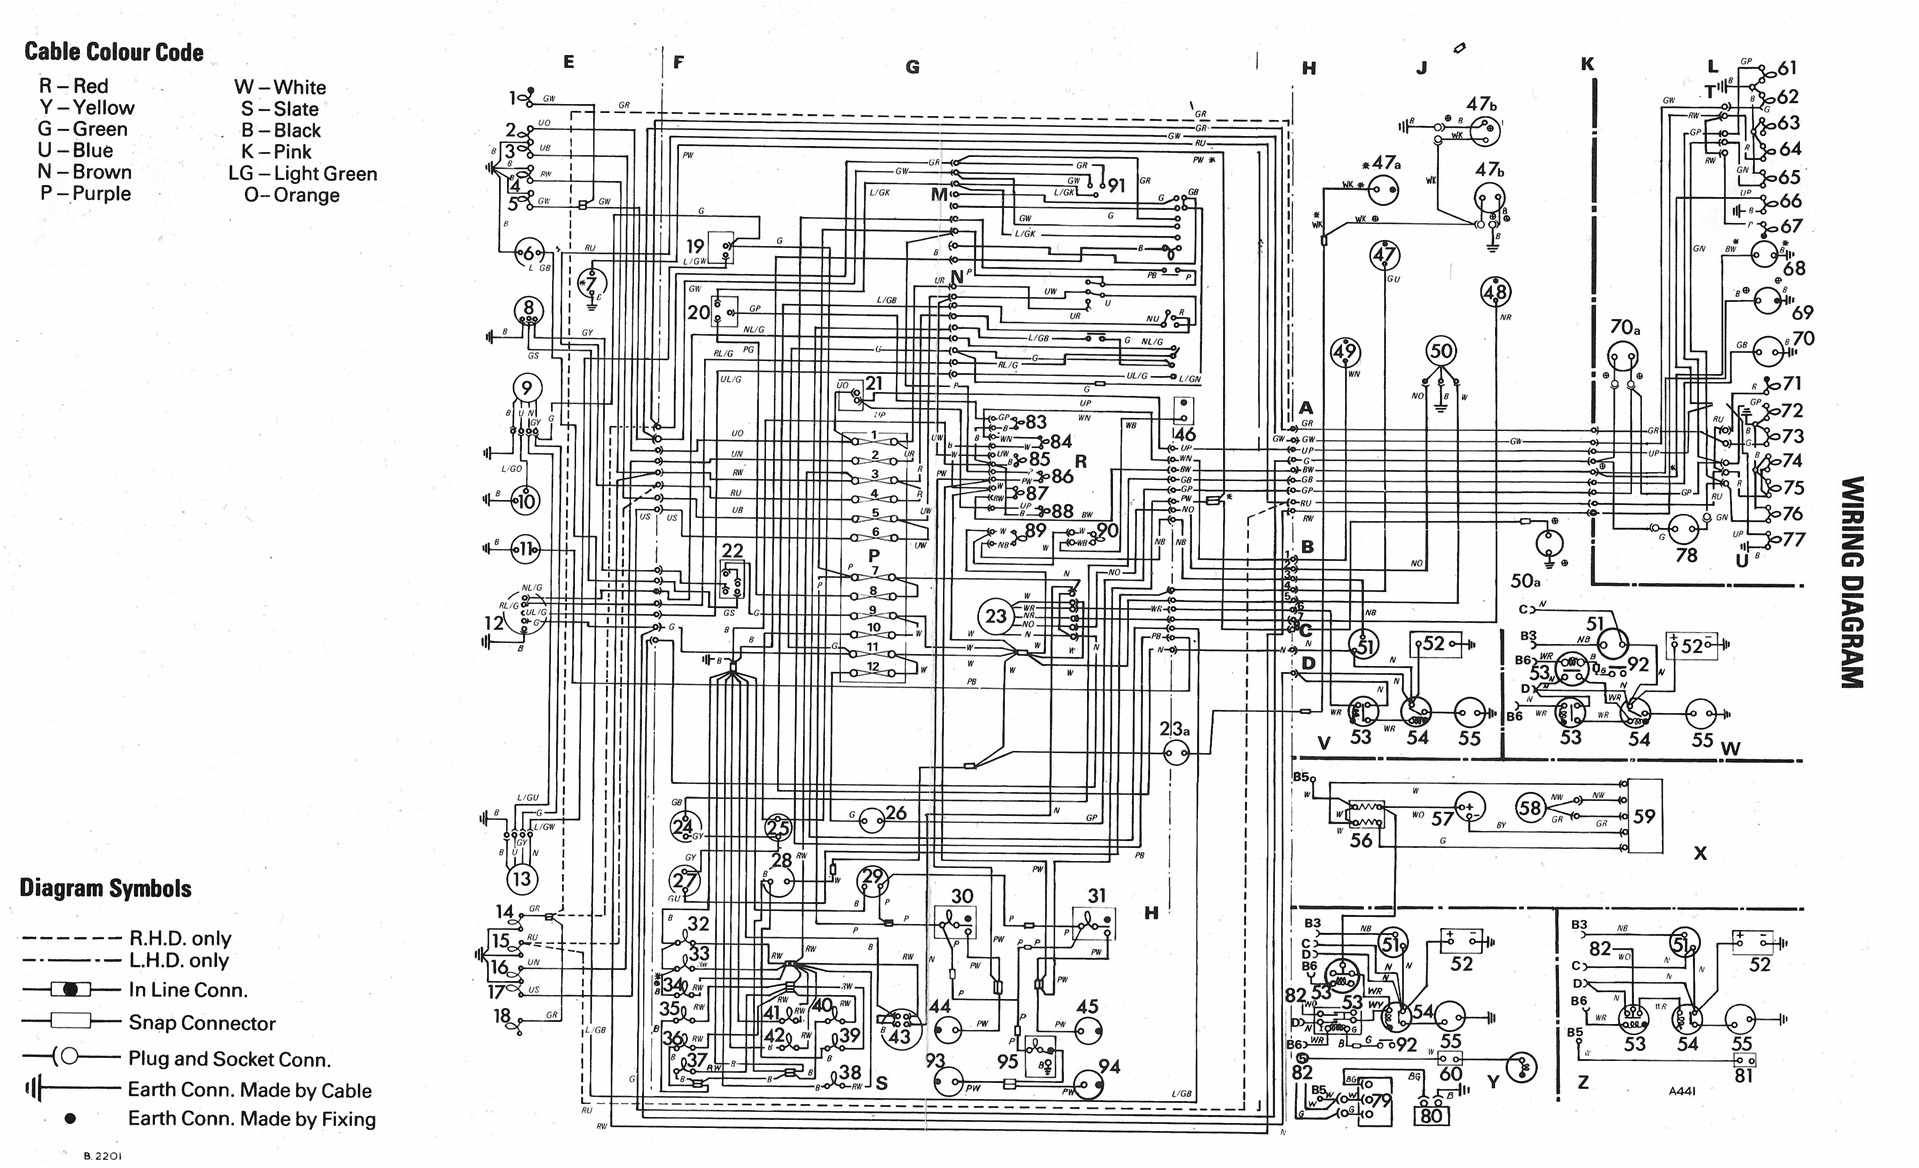 2005 Vw Golf Wiring Diagram:  Mk1 rh:pinterest.com,Design